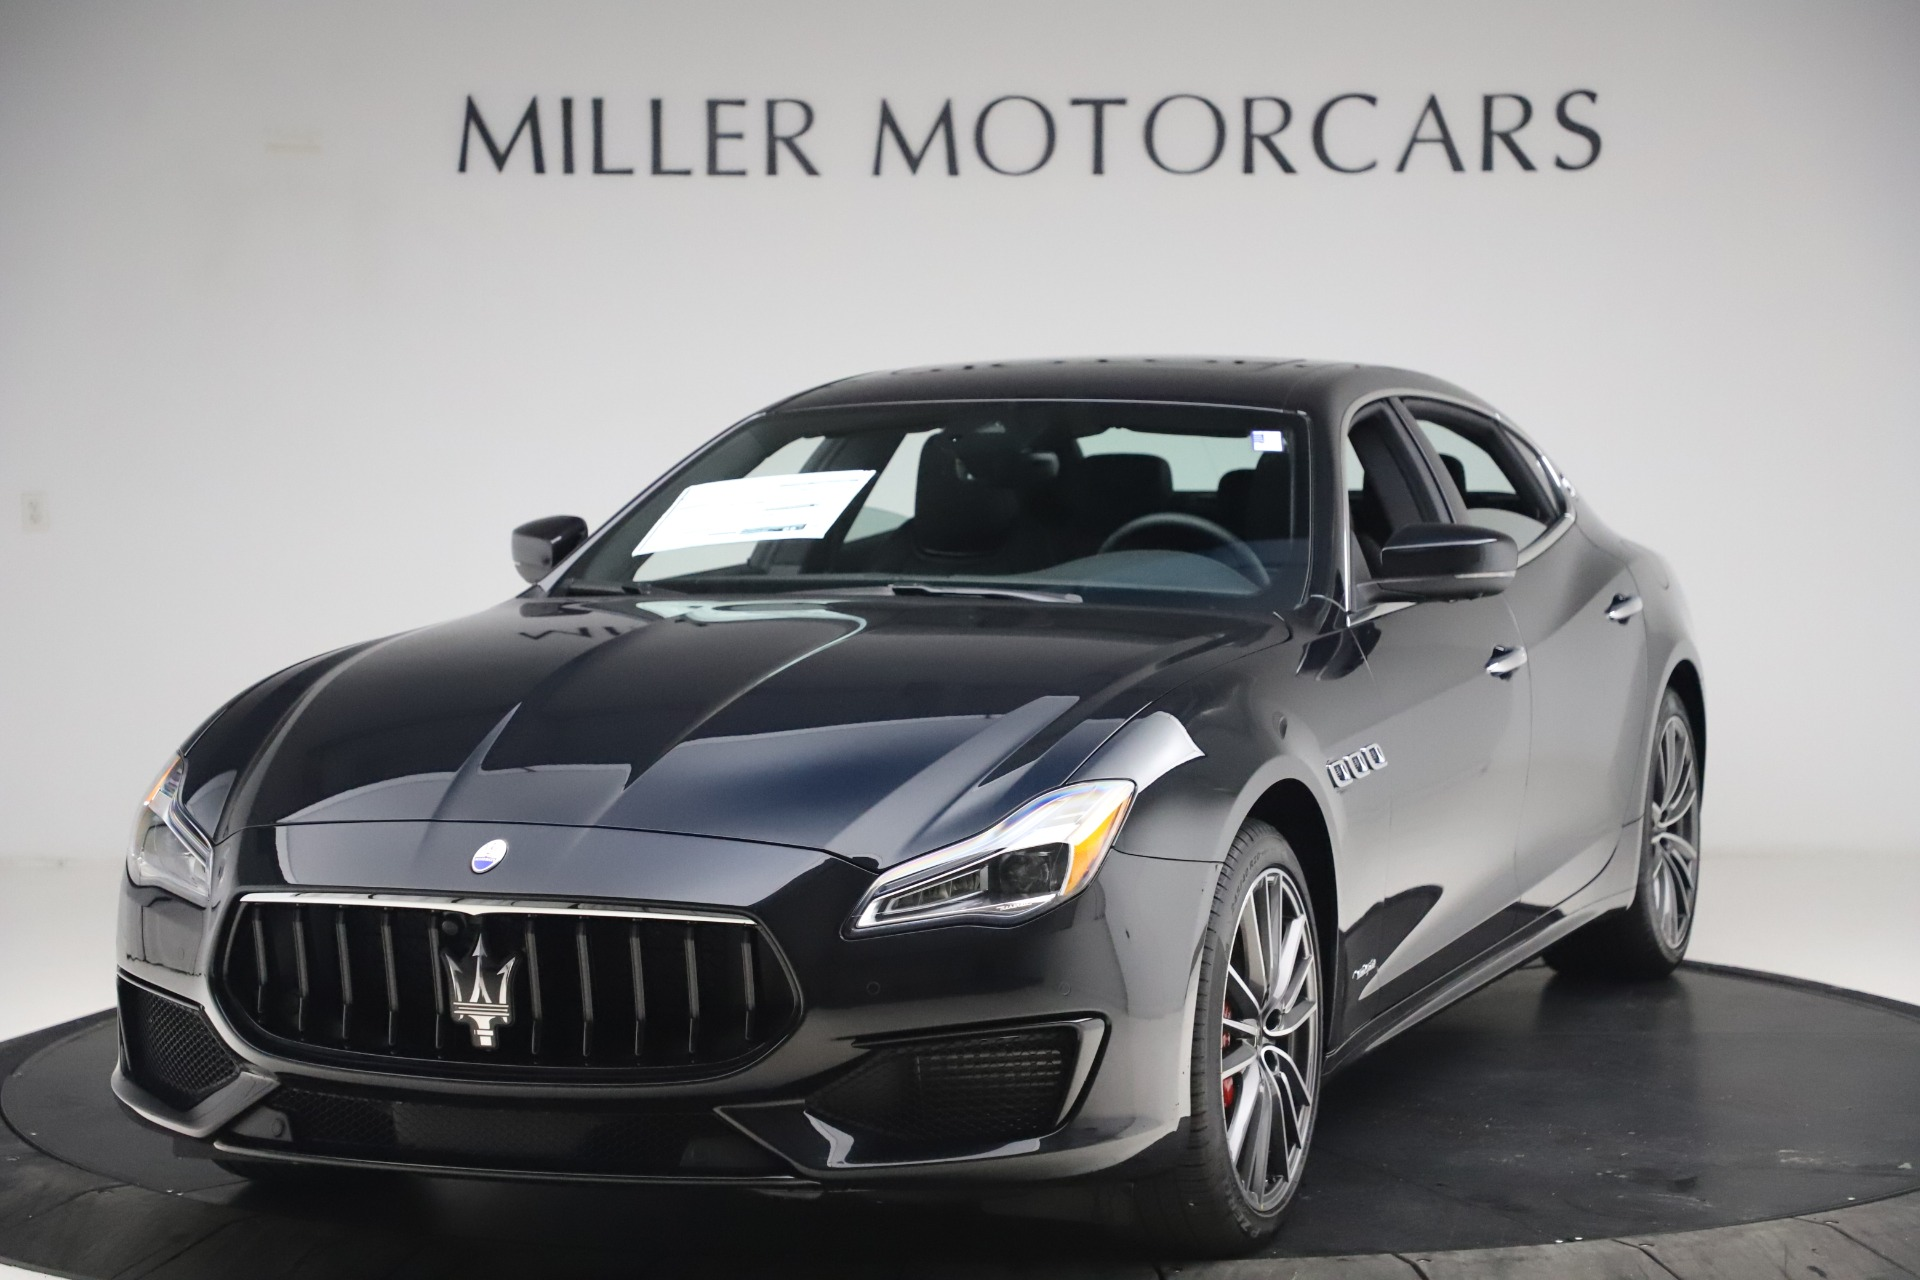 New 2021 Maserati Quattroporte S Q4 GranSport for sale $129,185 at Pagani of Greenwich in Greenwich CT 06830 1